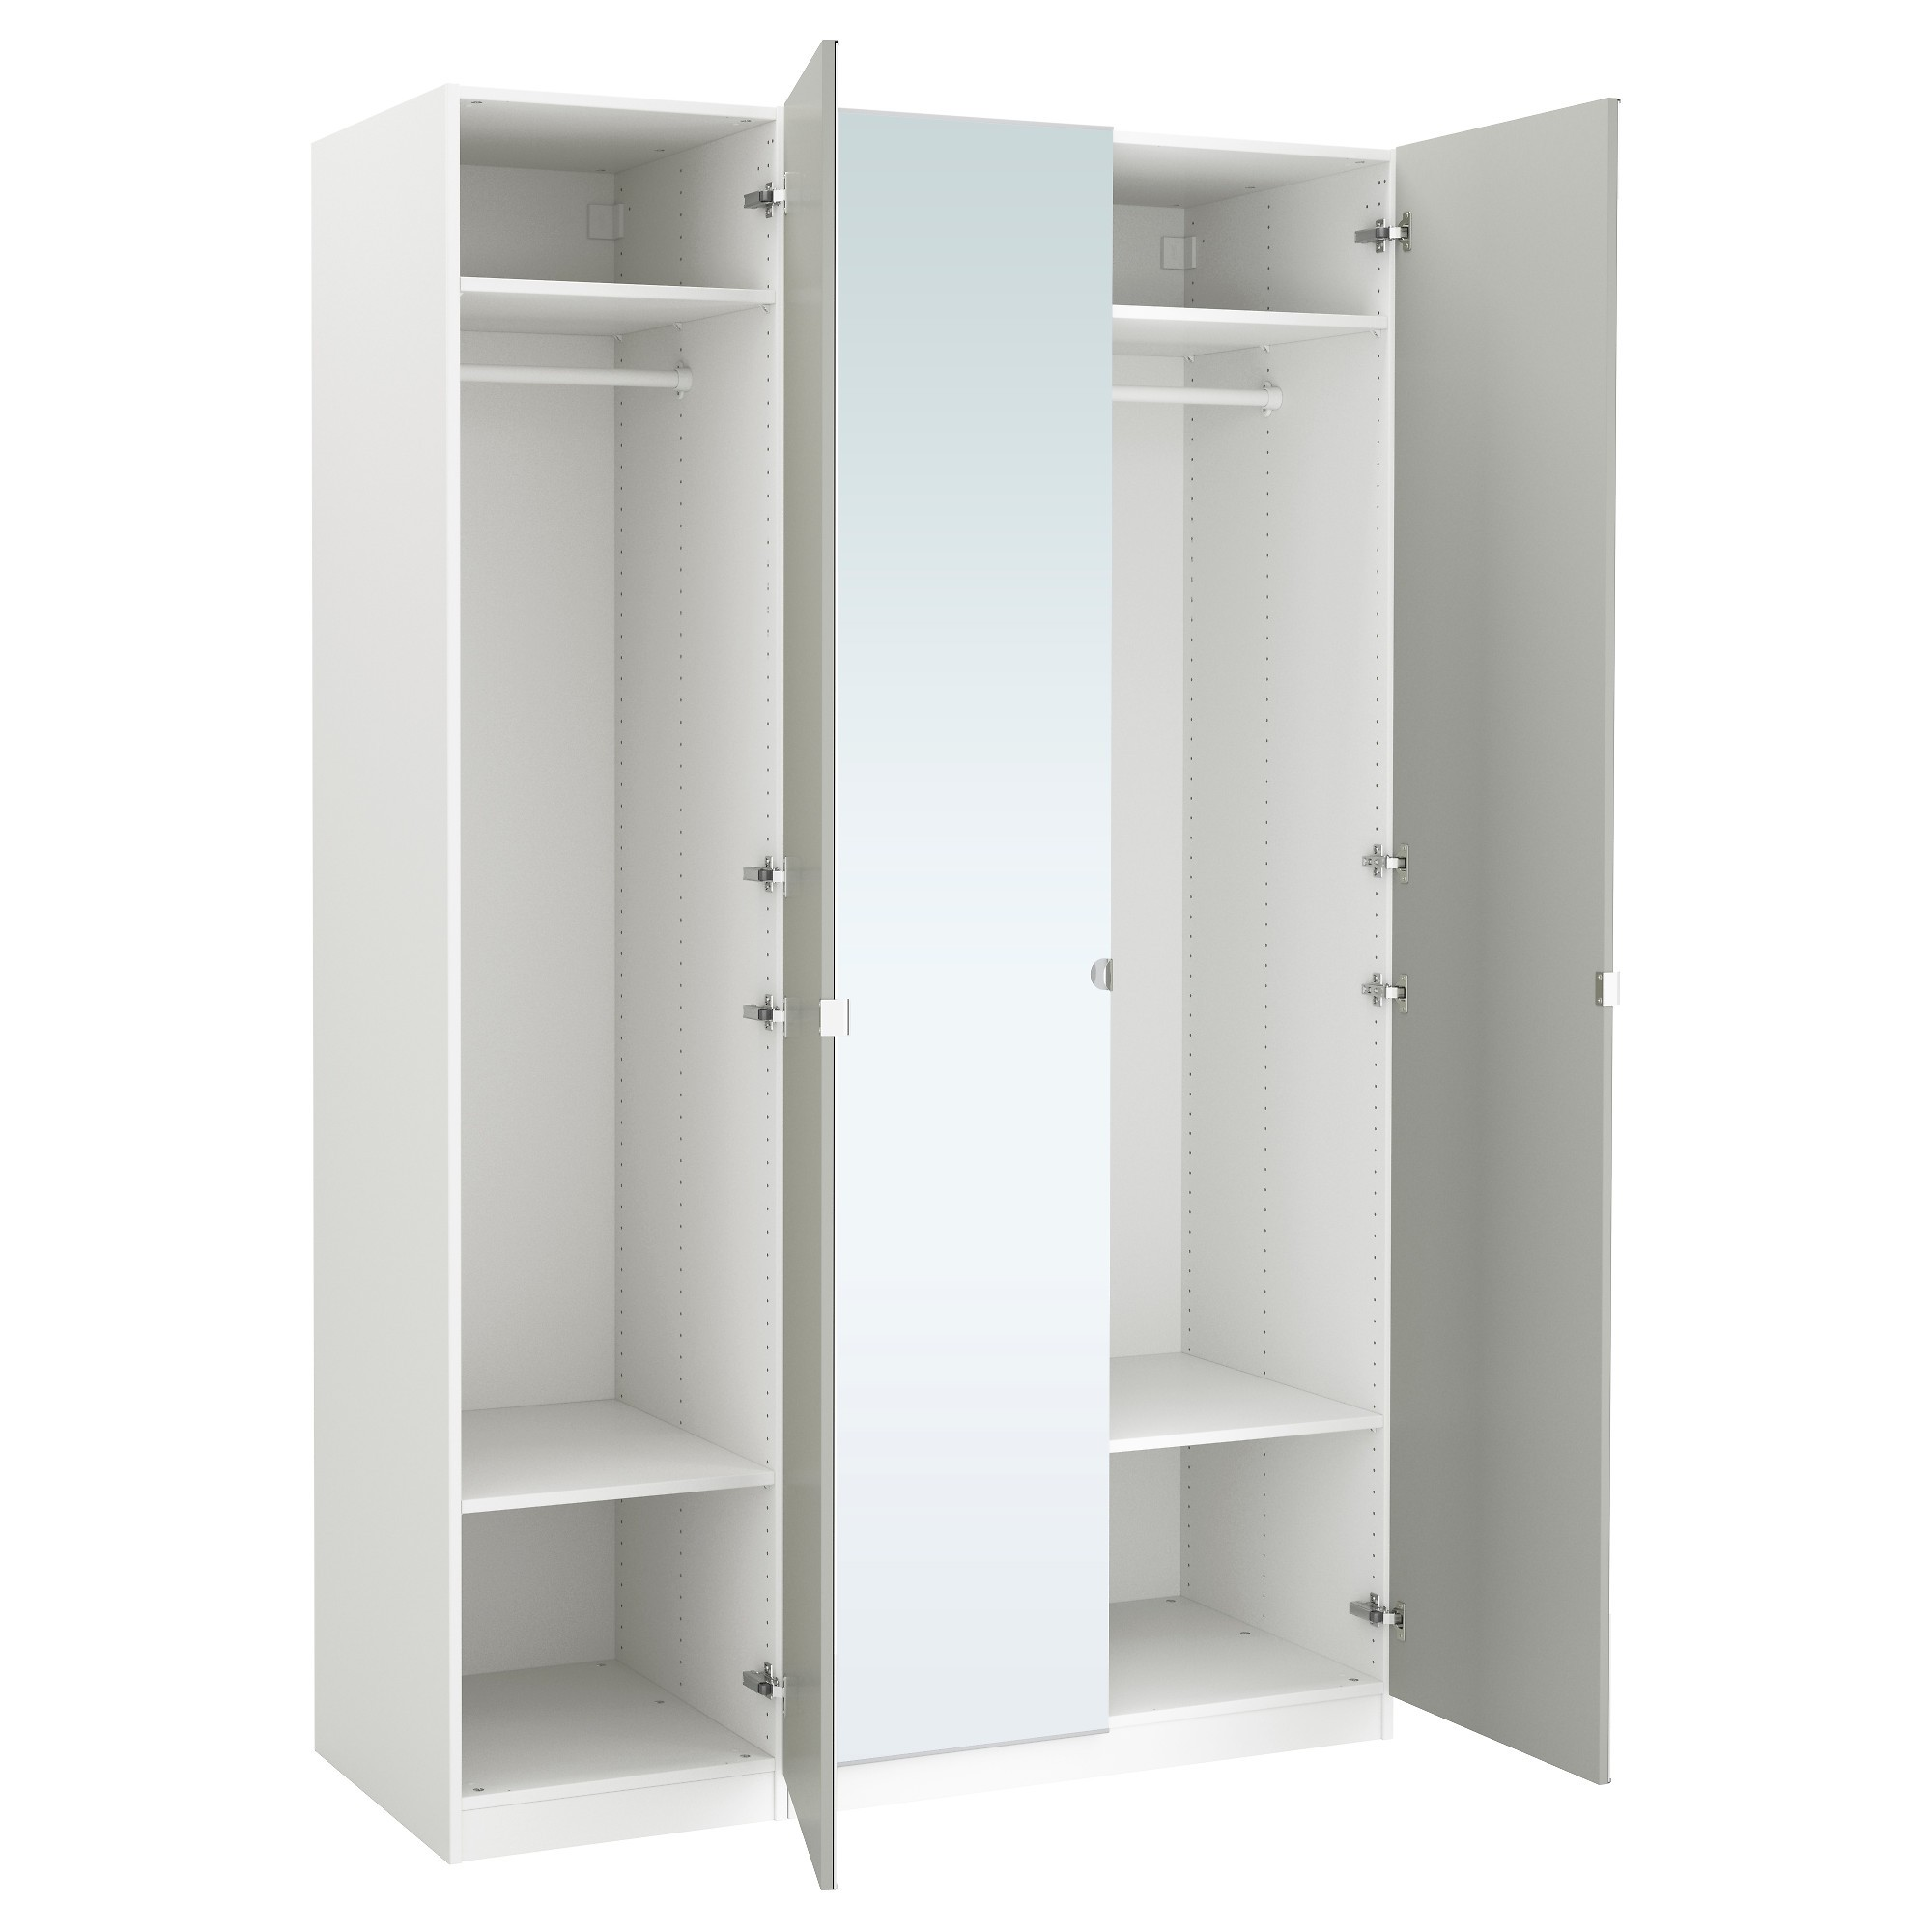 miroir pour porte de placard coulissant awesome porte coulissante miroir ikea with porte. Black Bedroom Furniture Sets. Home Design Ideas